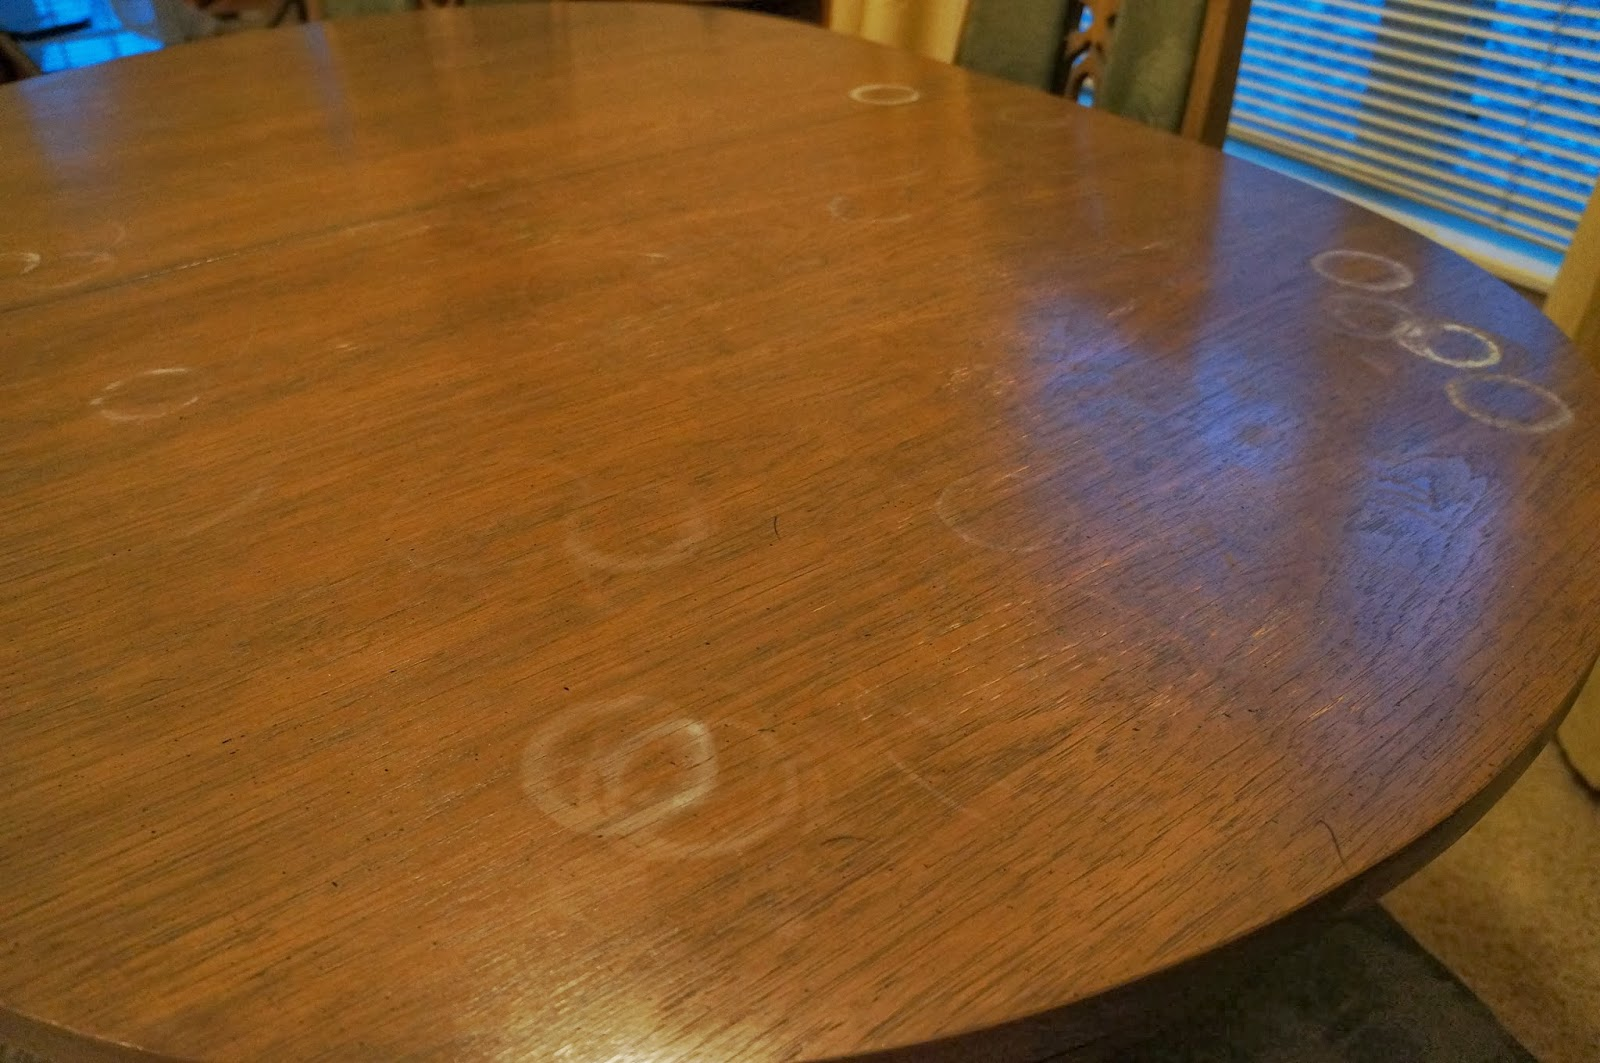 How To Get White Marks Off A Wood Table By Cmp